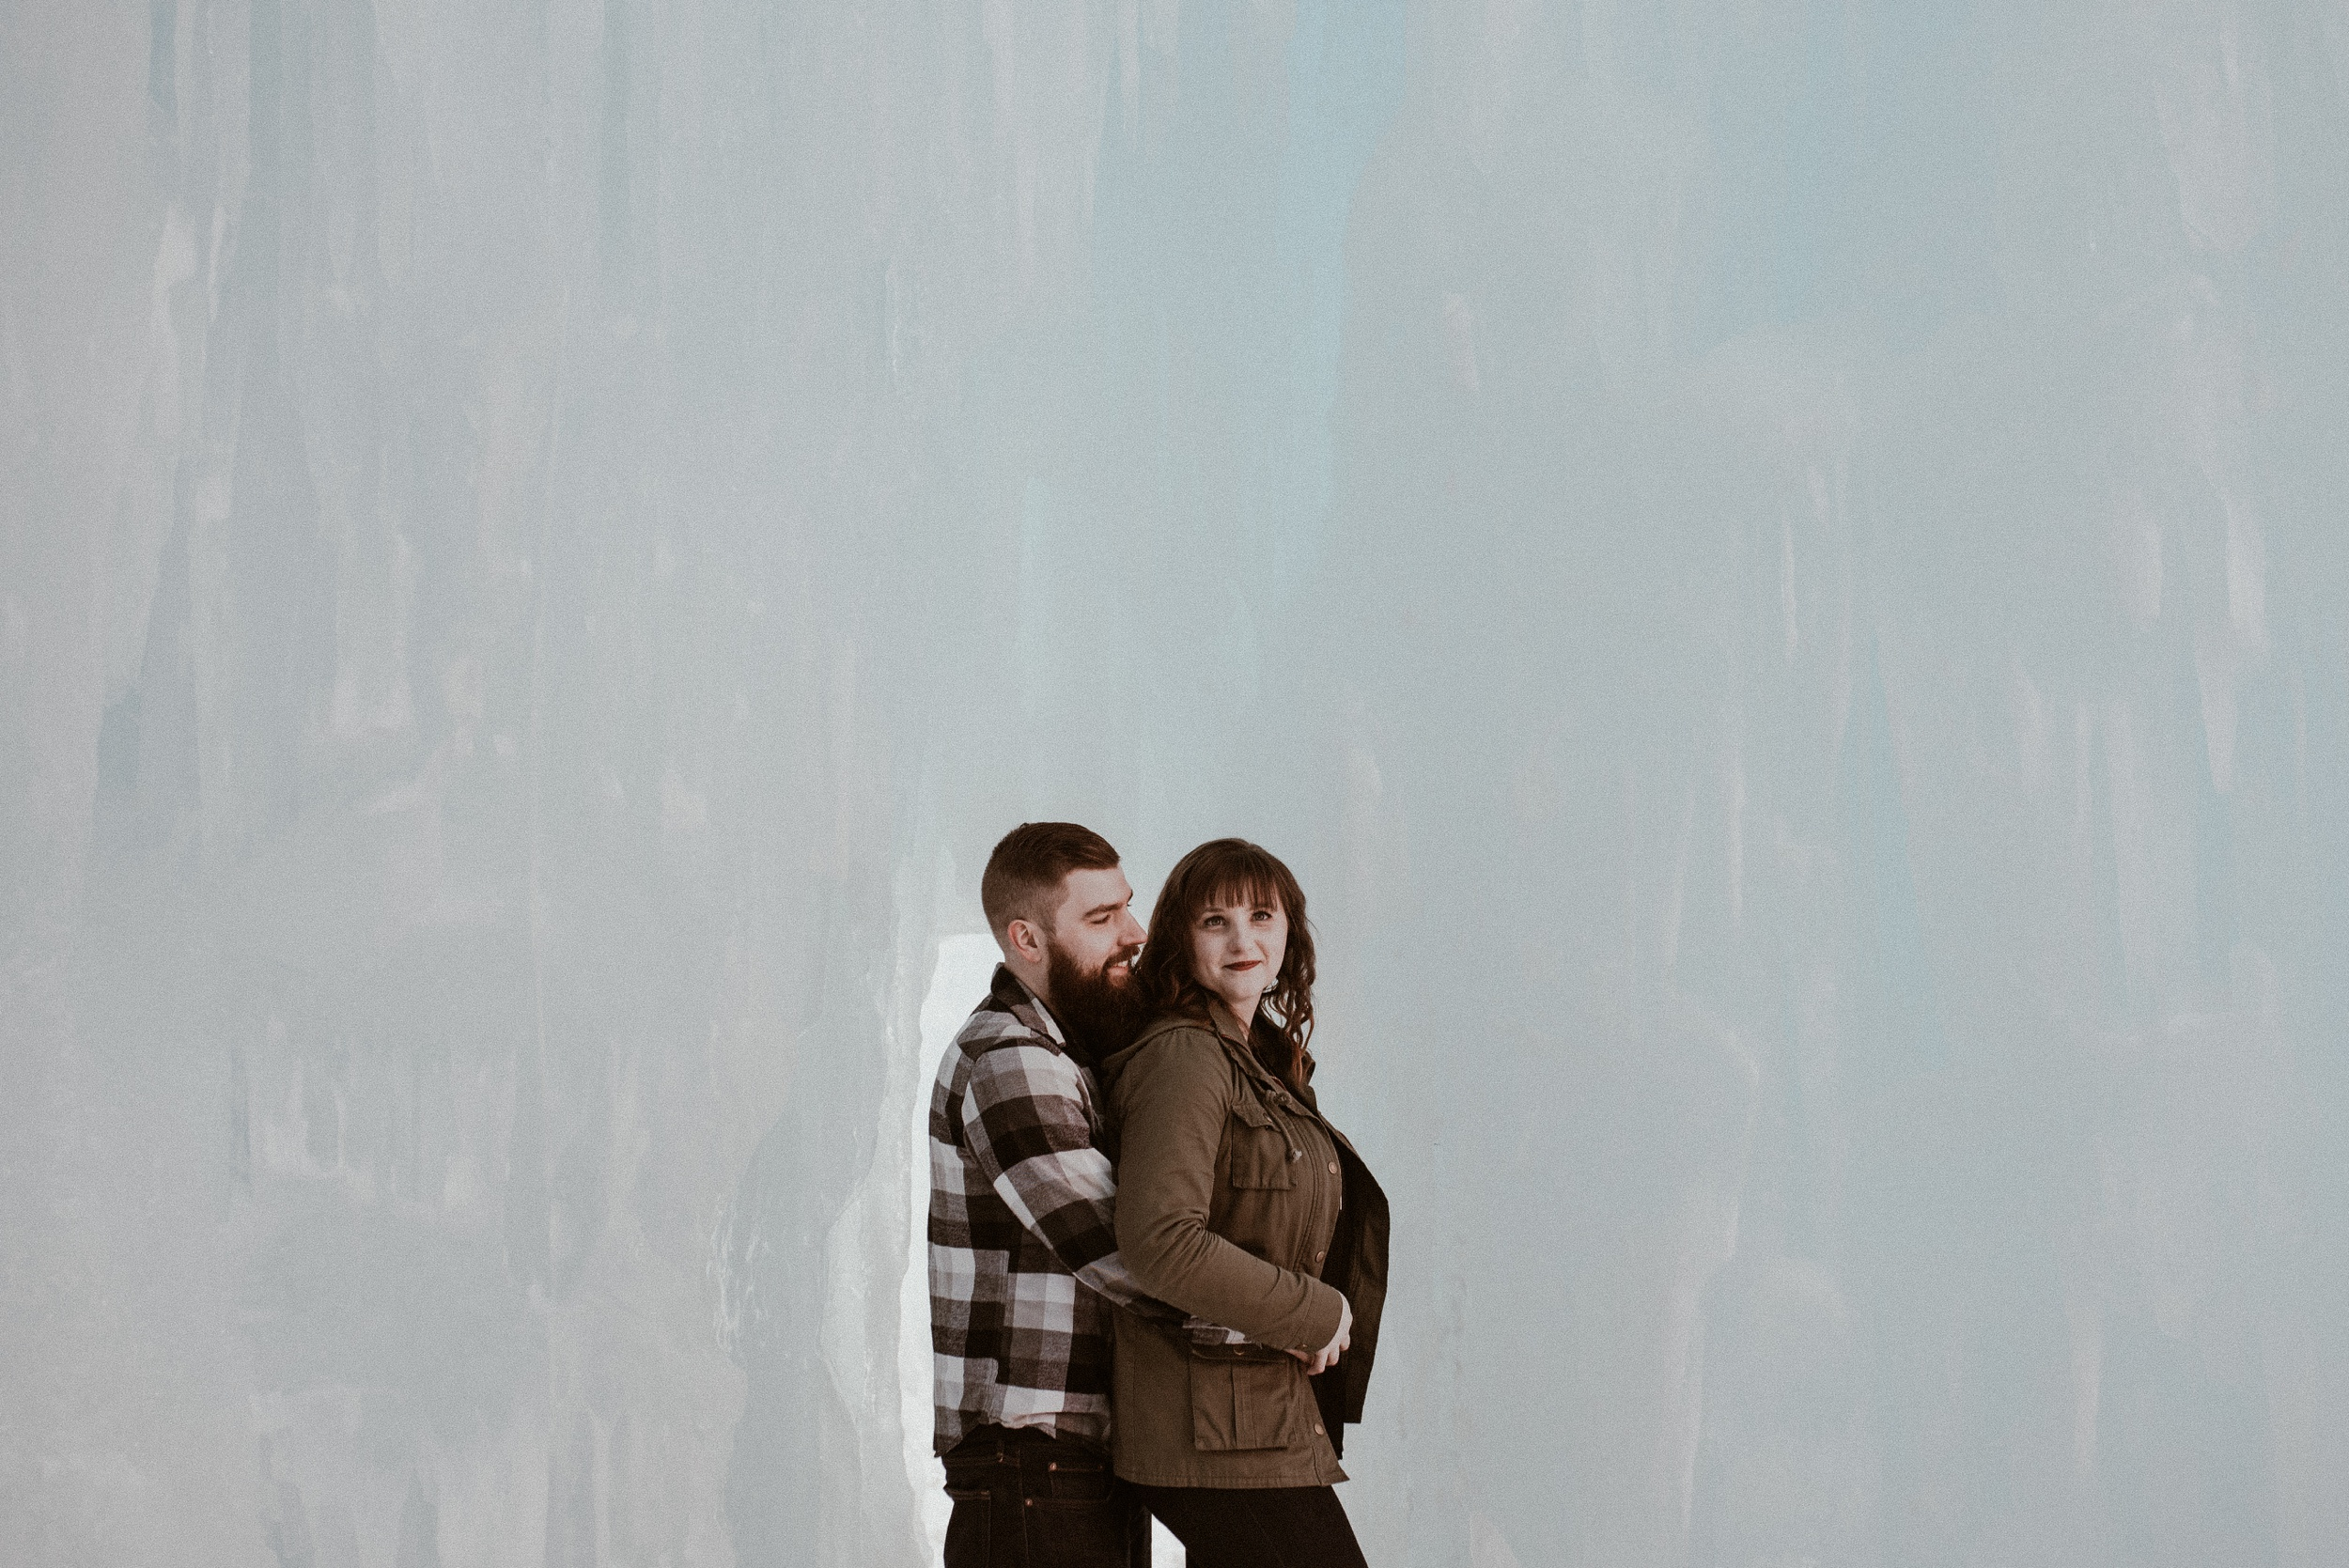 ice-castles-nh-engagement-session-boston-wedding-photographer-vanessa-alves-photography15.jpg